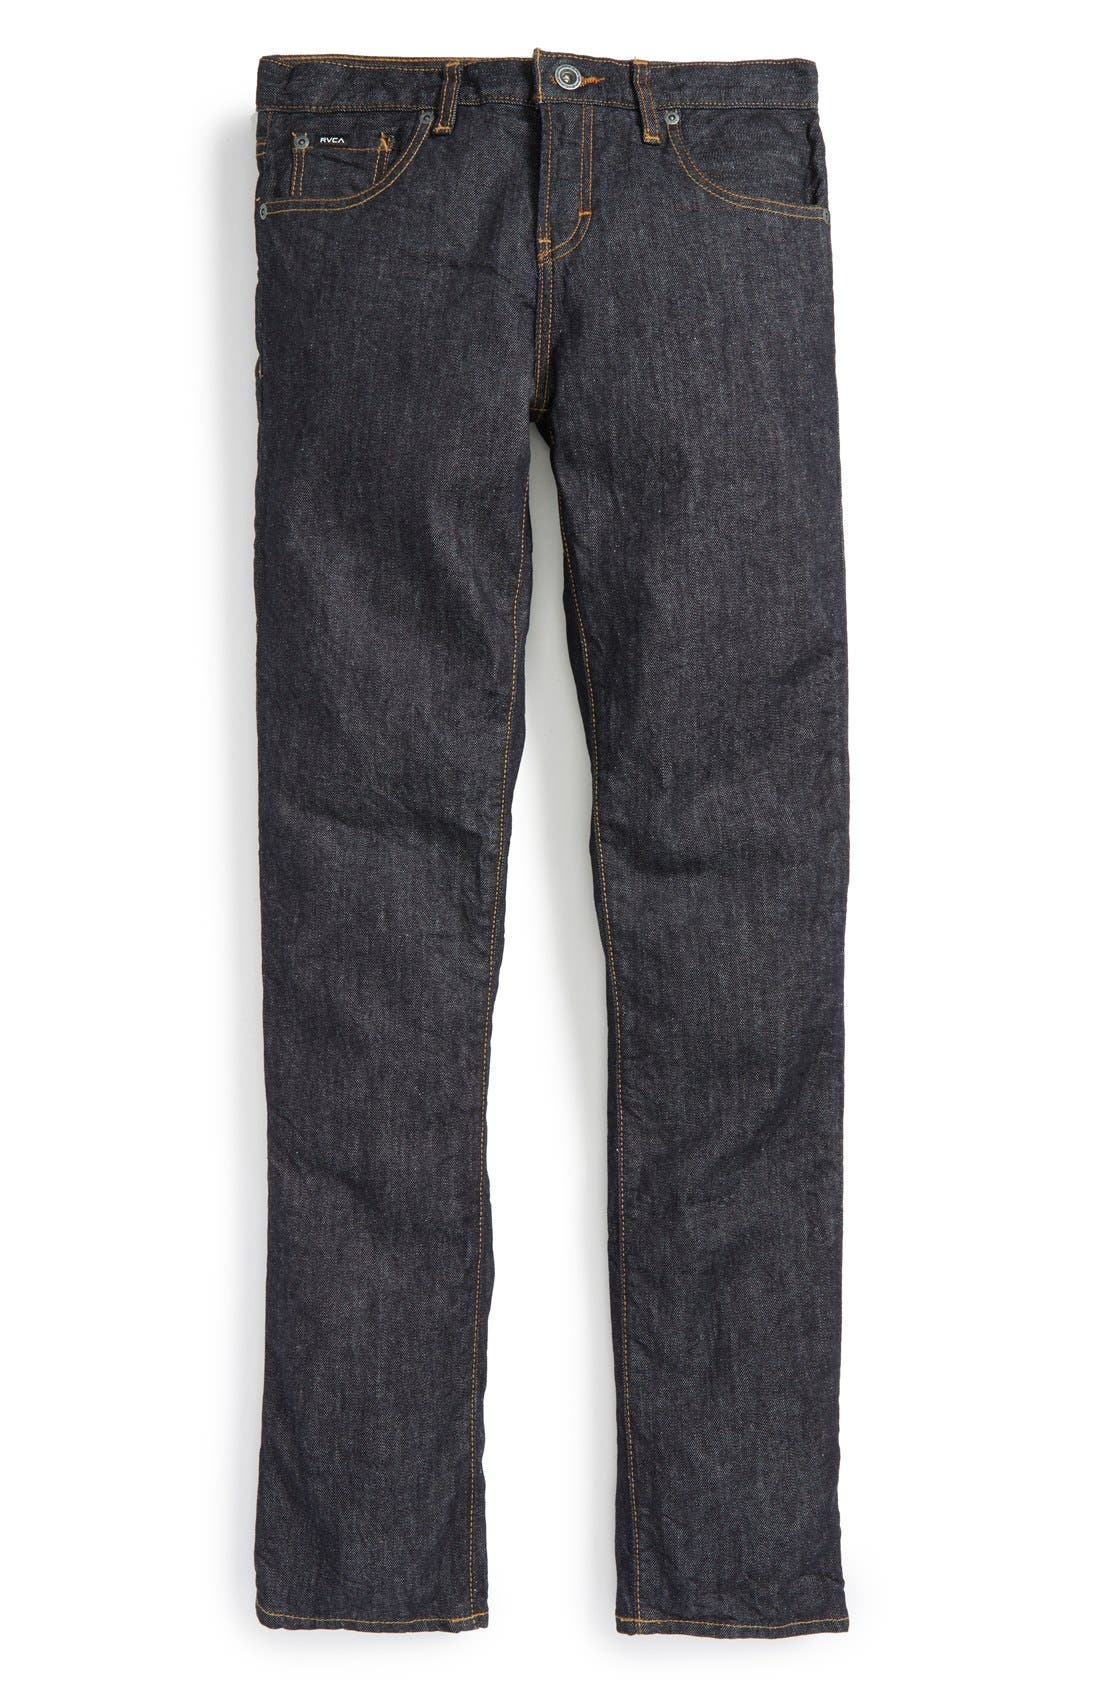 'Daggers' Slim Fit Jeans,                         Main,                         color, Deep Indigo